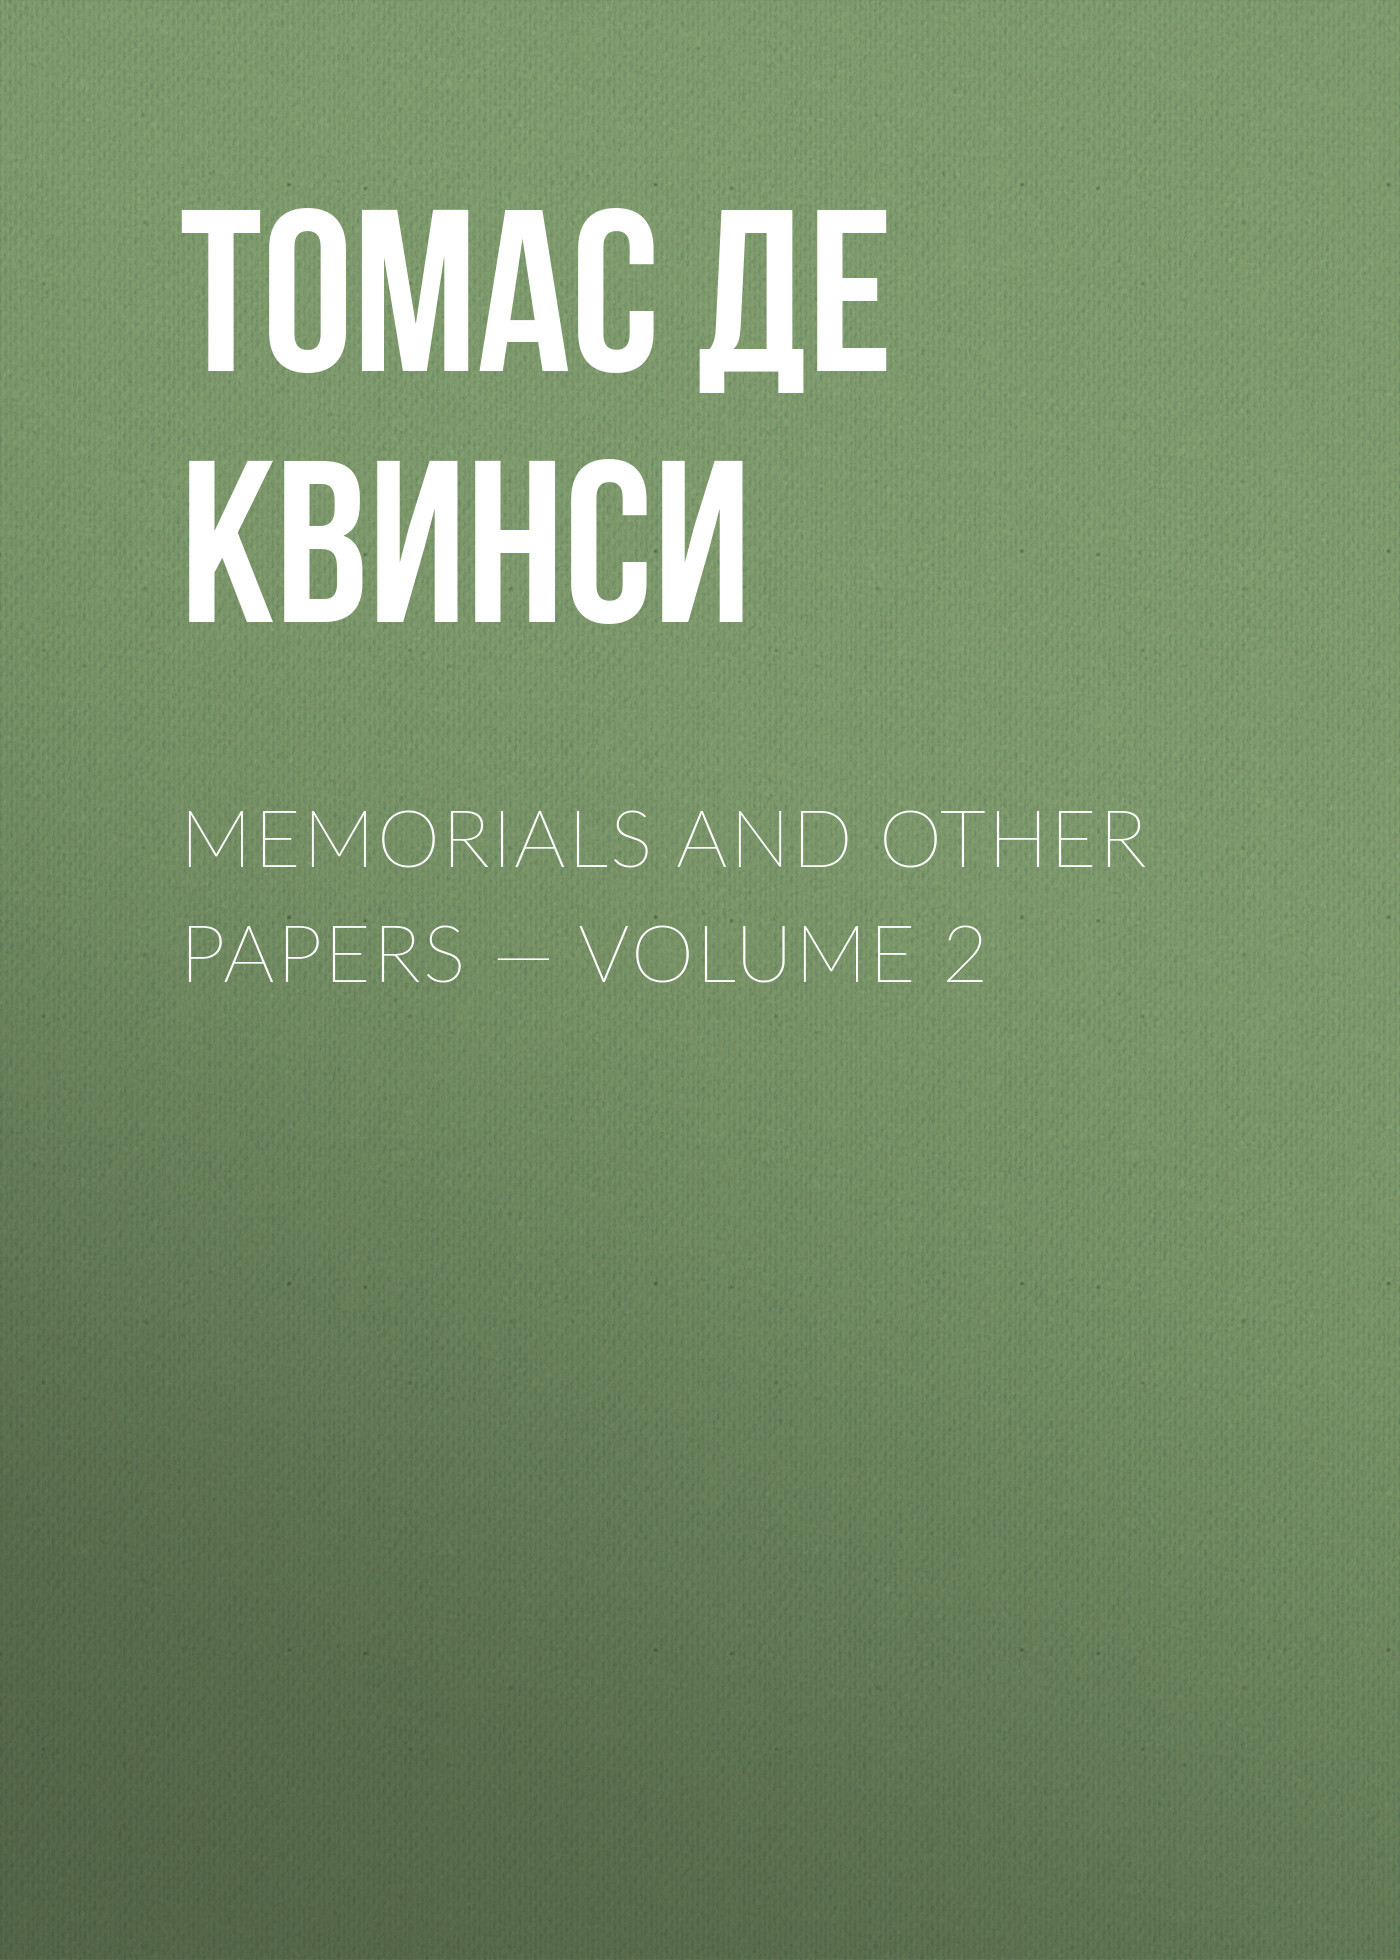 Томас де Квинси Memorials and Other Papers — Volume 2 other 2 swwb00116